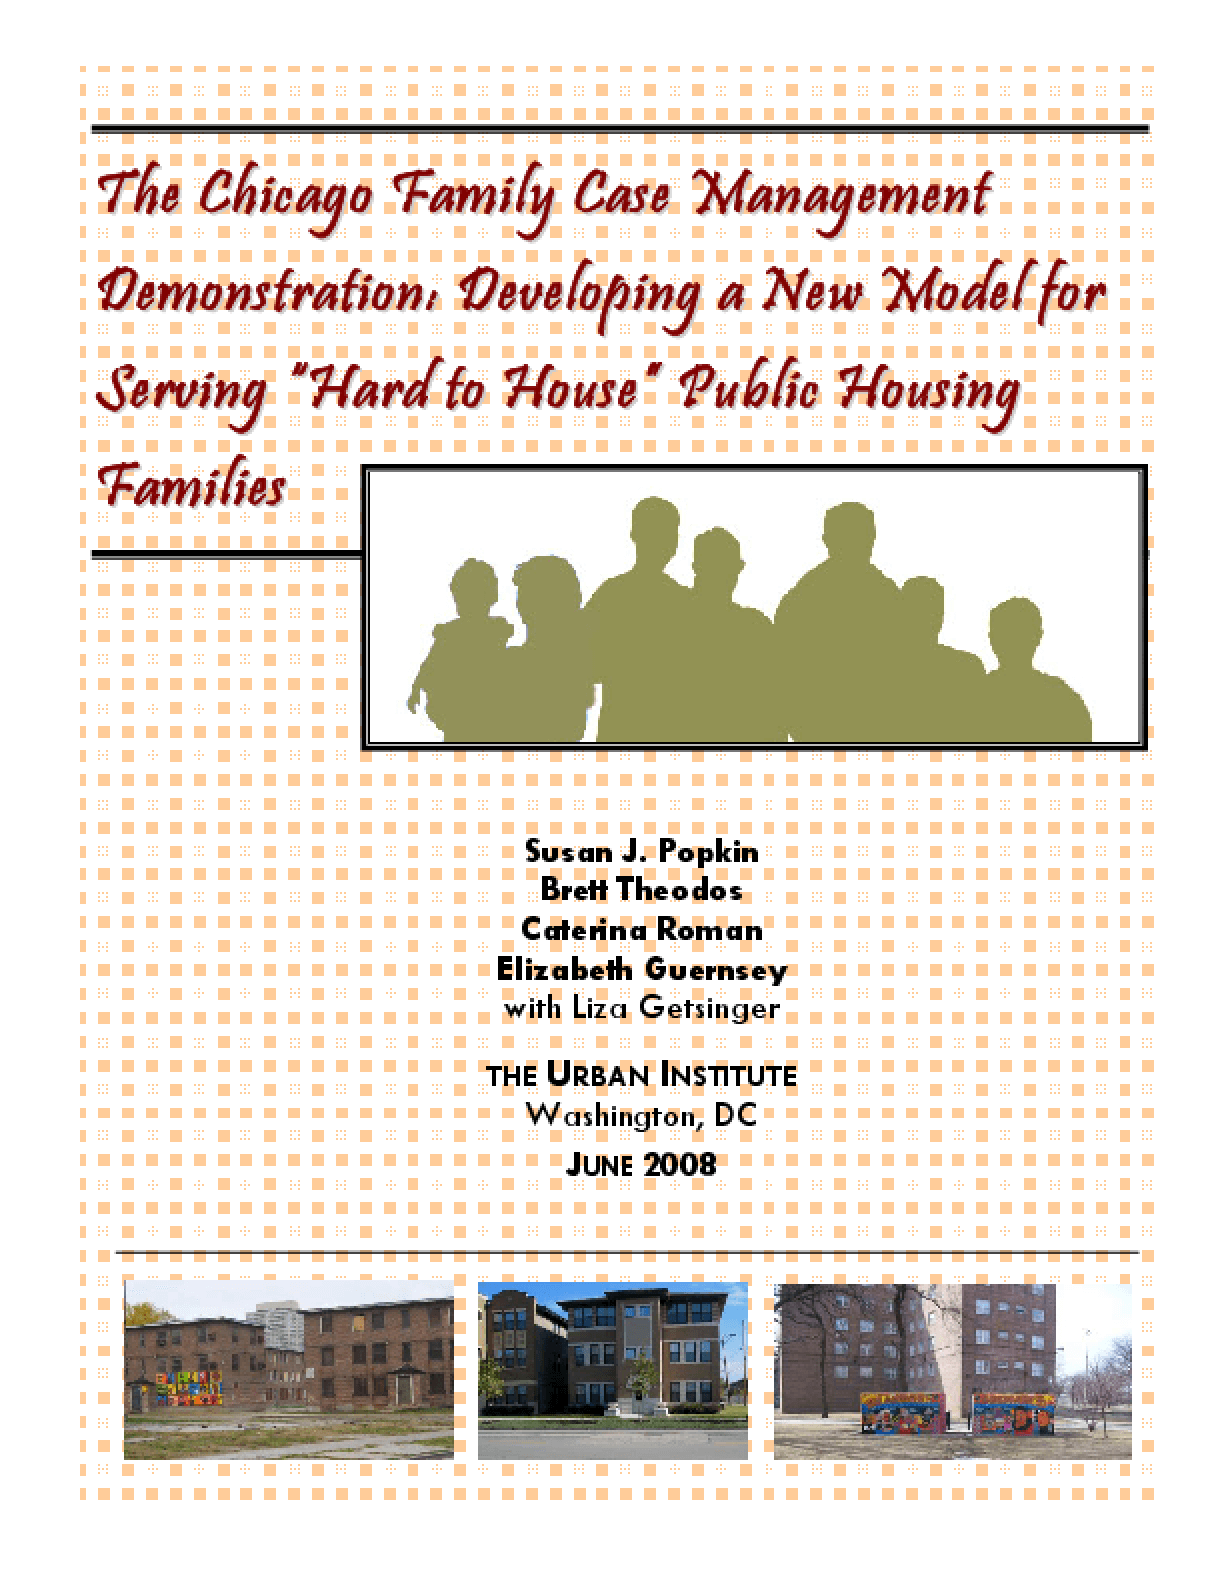 """The Chicago Family Case Management Demonstration: Developing a New Model for Serving """"Hard to House"""" Public Housing Families"""